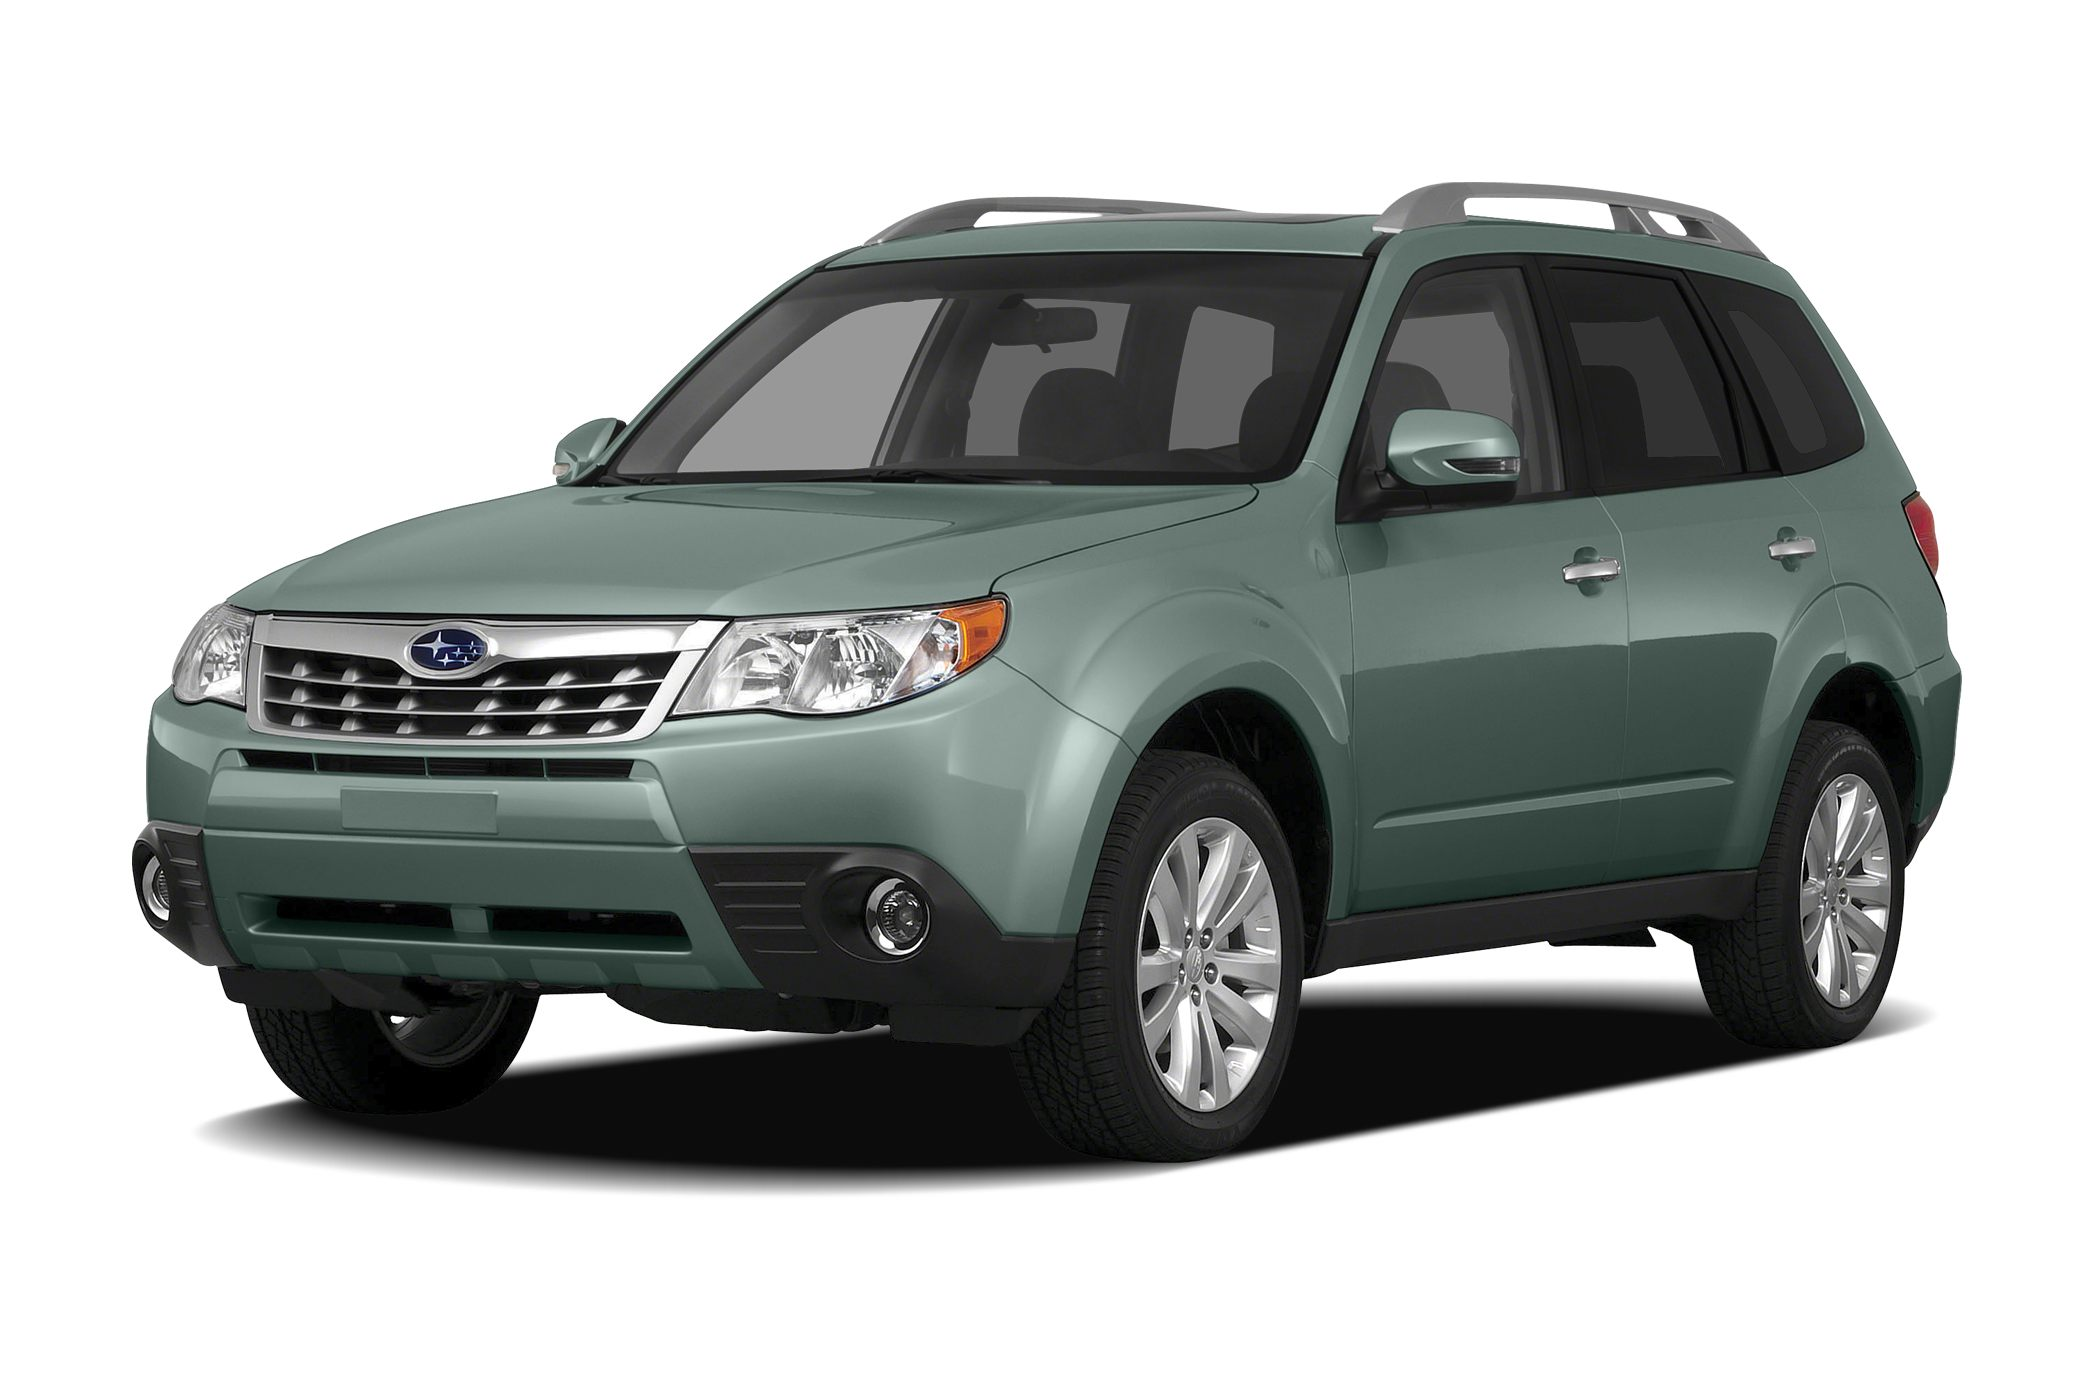 2012 Subaru Forester 25X WE SELL OUR VEHICLES AT WHOLESALE PRICES AND STAND BEHIND OUR CARS